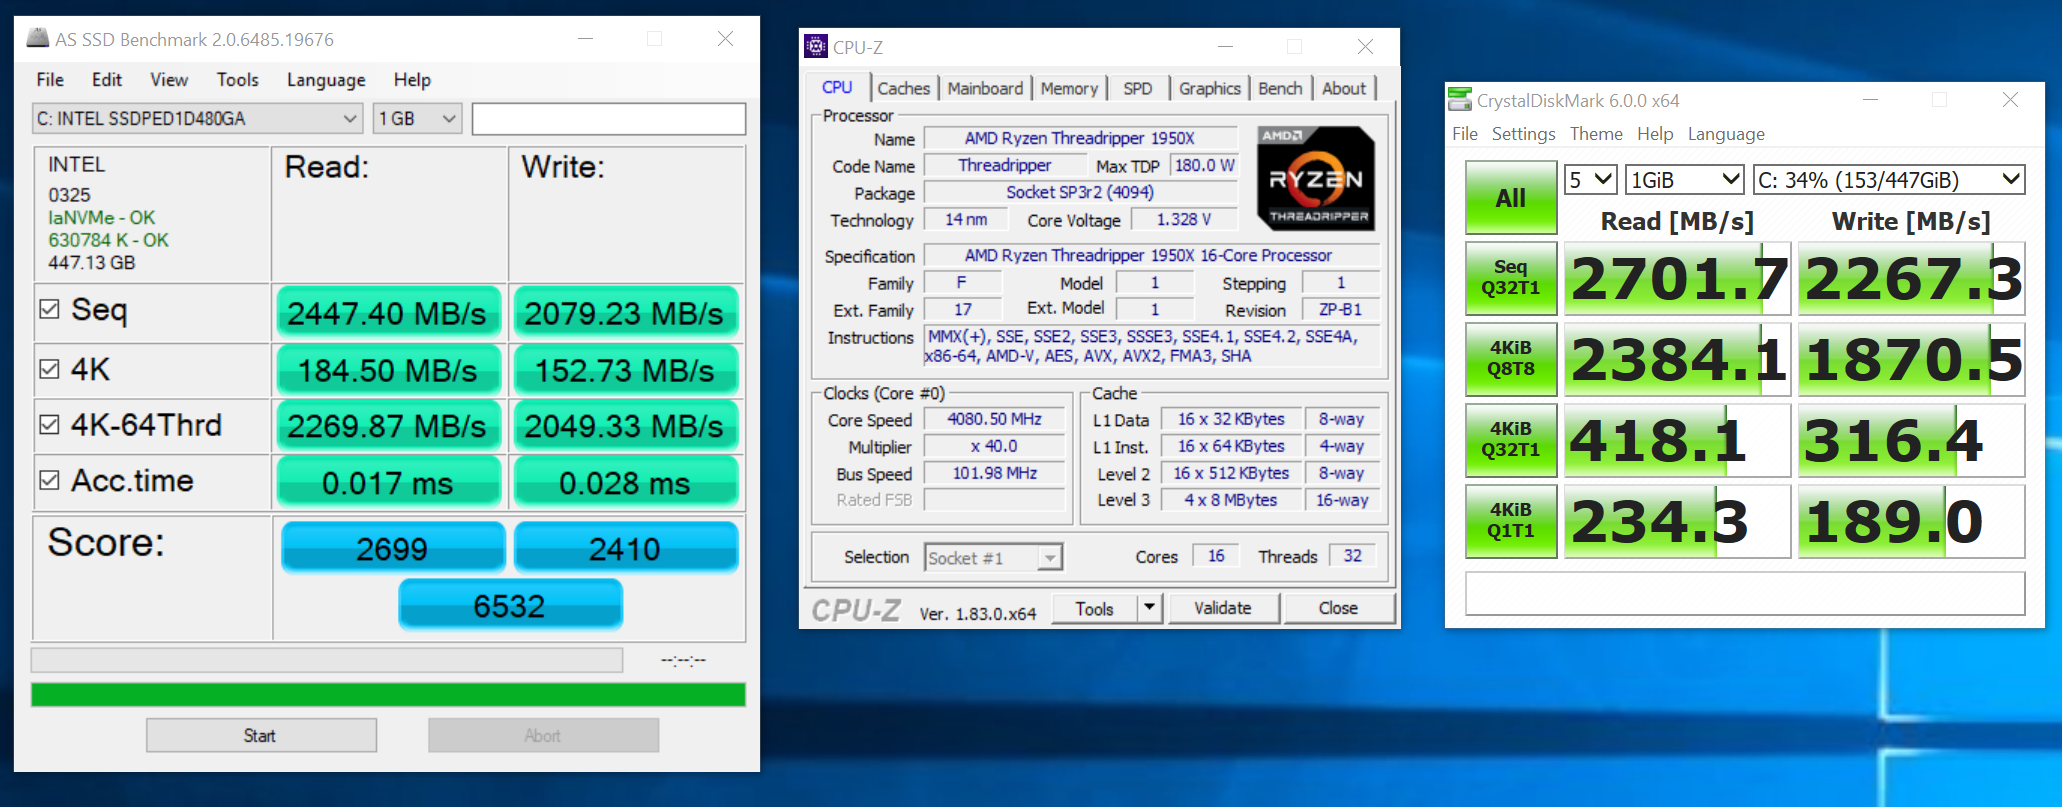 What is your AS SSD Benchmark score? | Page 8 | TechPowerUp Forums